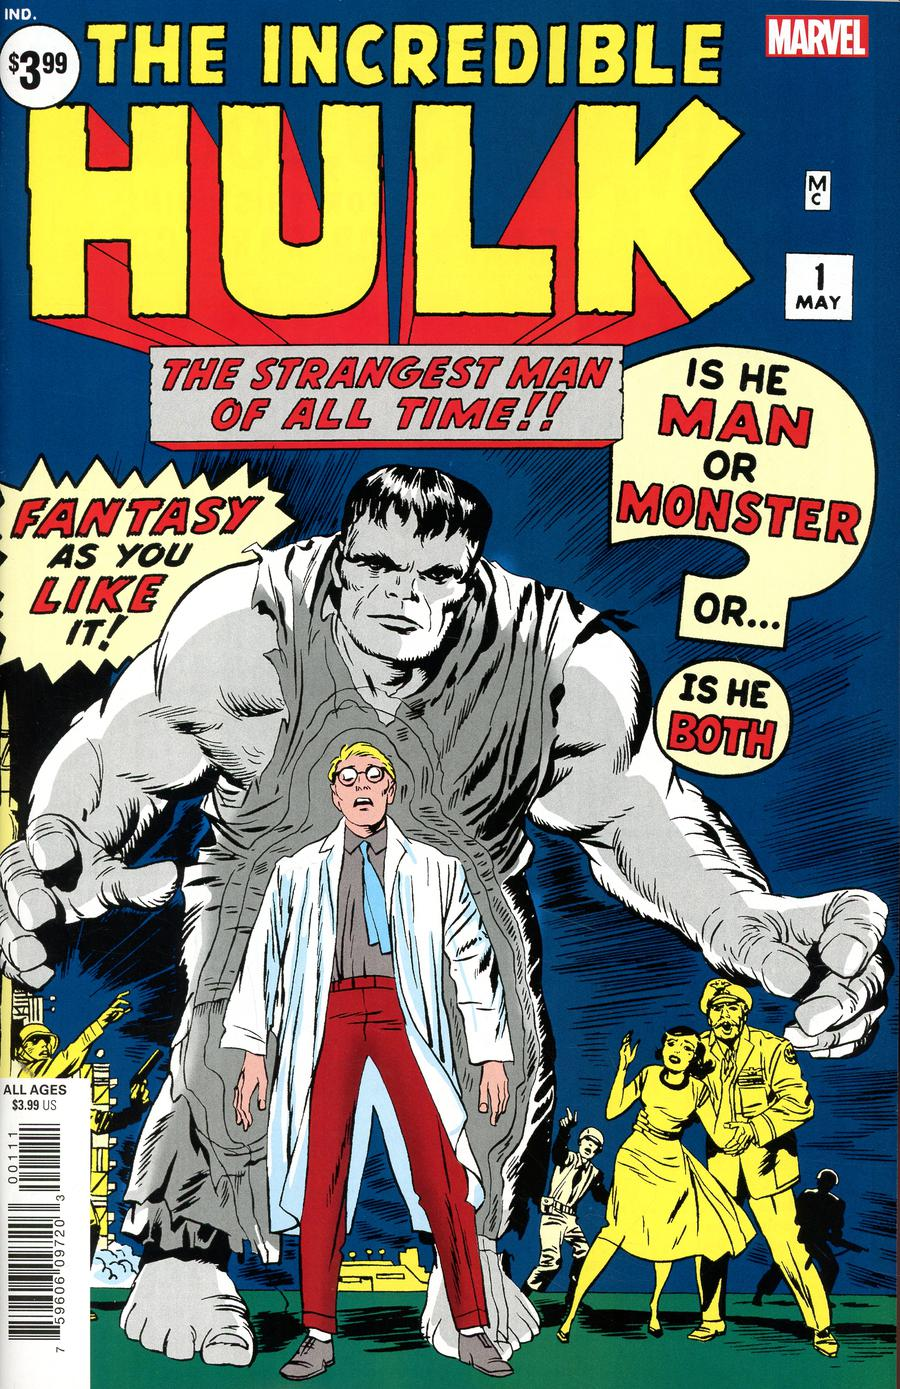 Incredible Hulk #1 Cover E Facsimile Edition